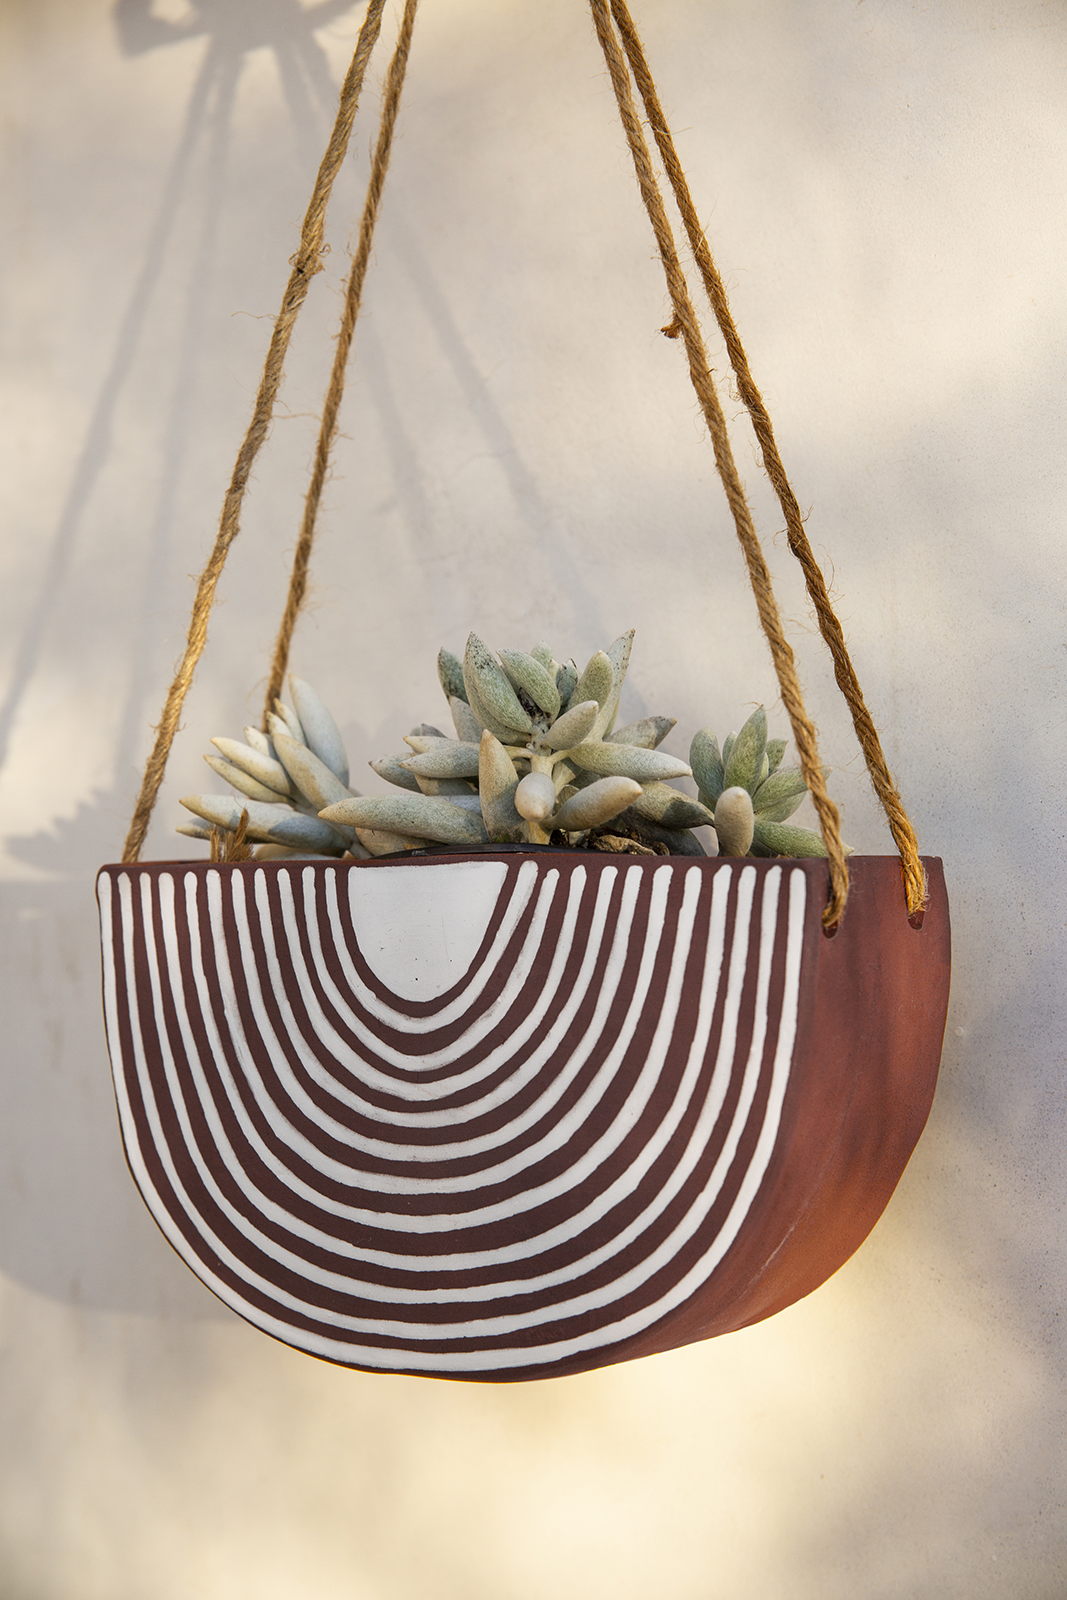 Hanging Terracotta Planter | Rainbow Roads